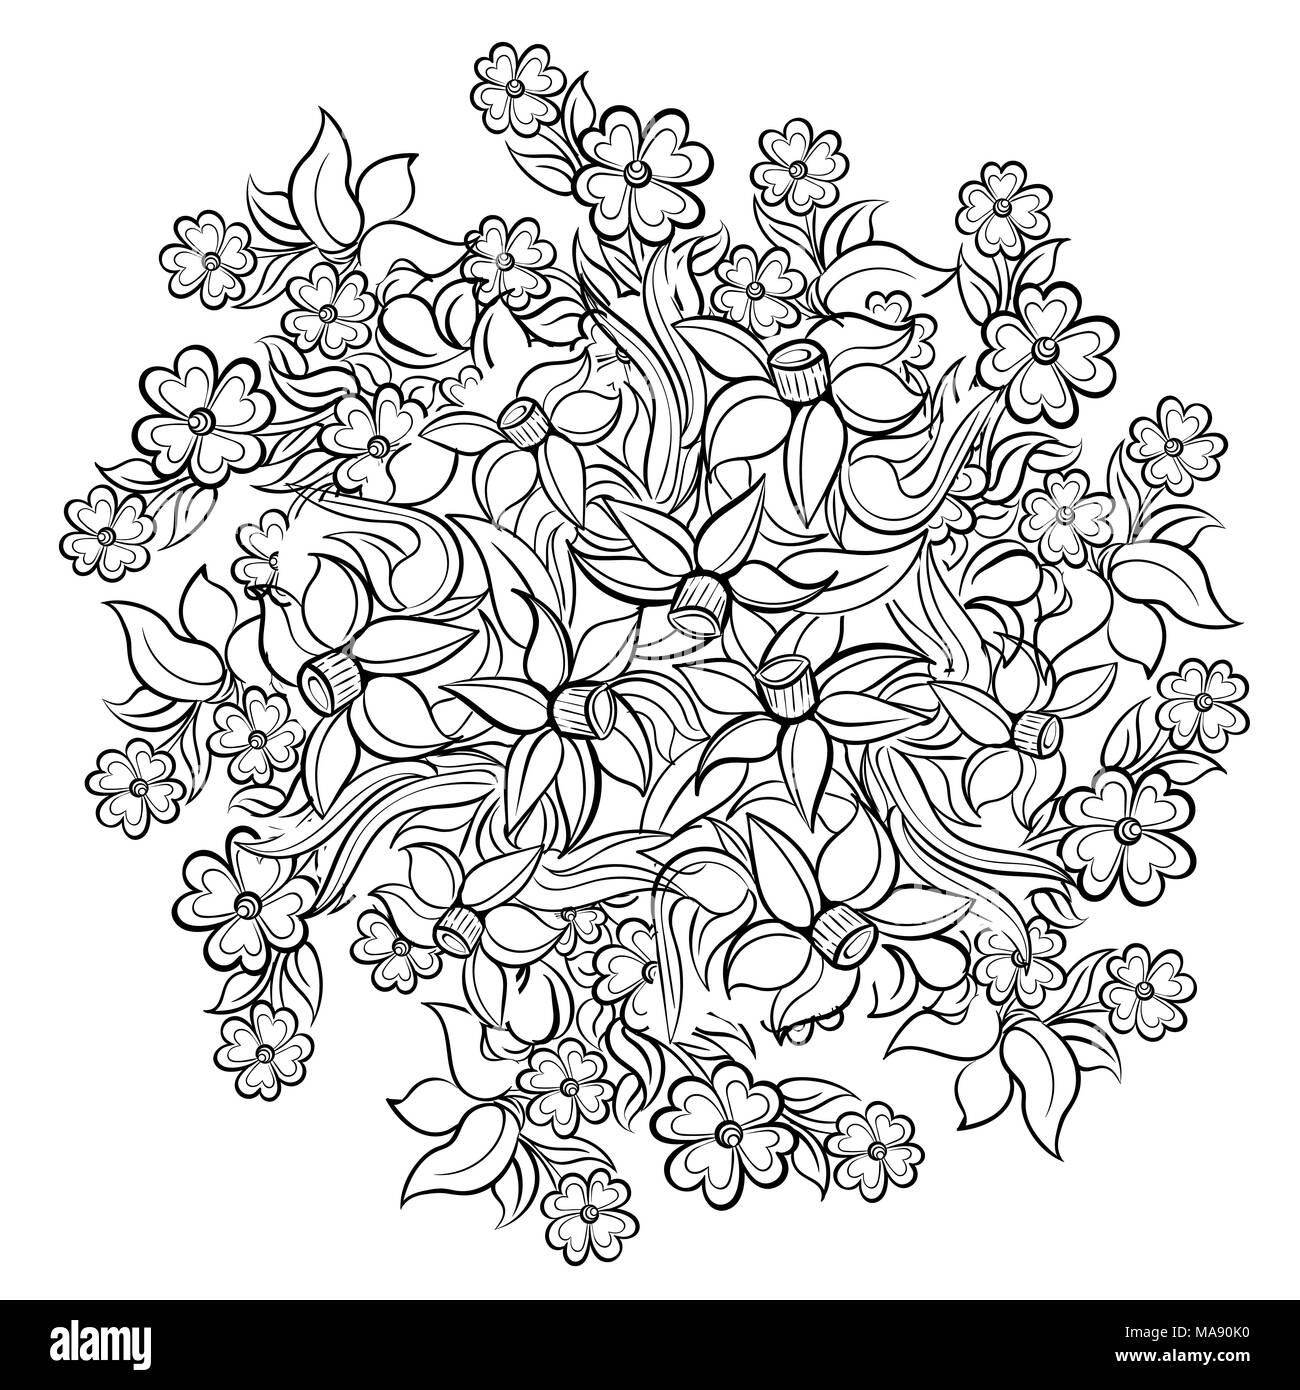 Floral elements and leaves for coloring book. Anti-stress coloring ...